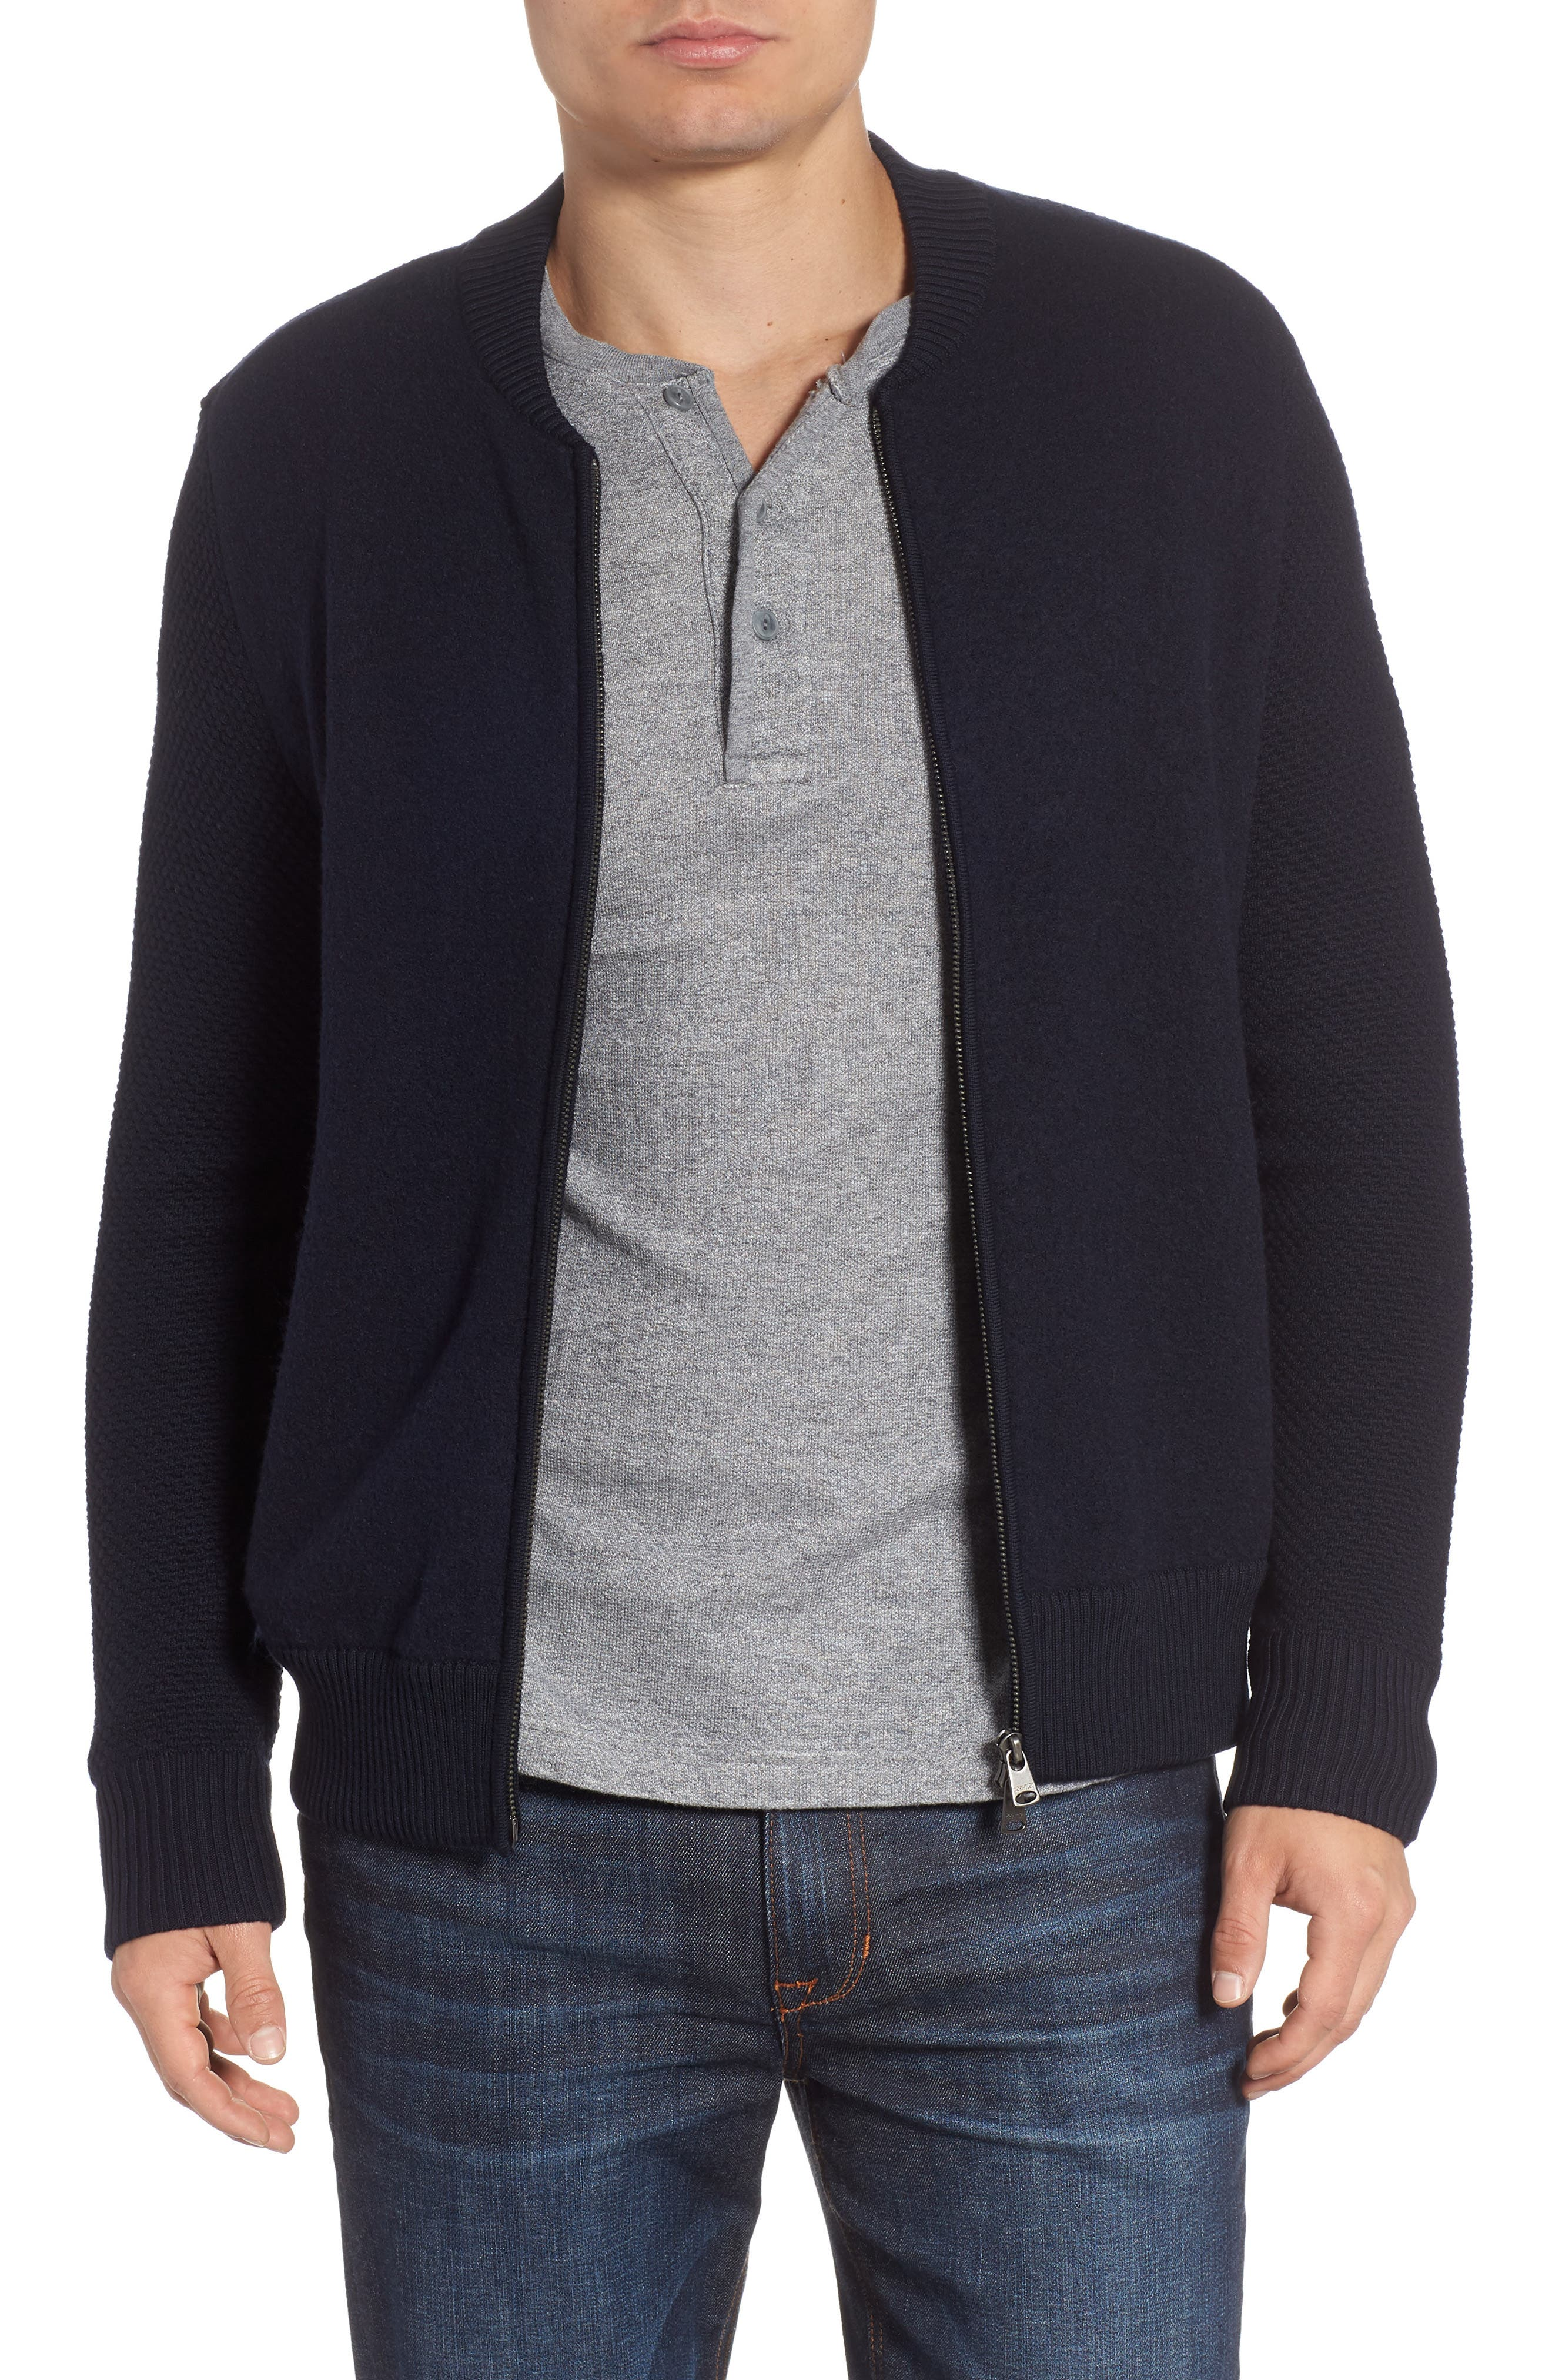 Felted Wool Bomber Jacket,                             Main thumbnail 1, color,                             BLUE GRAPHITE